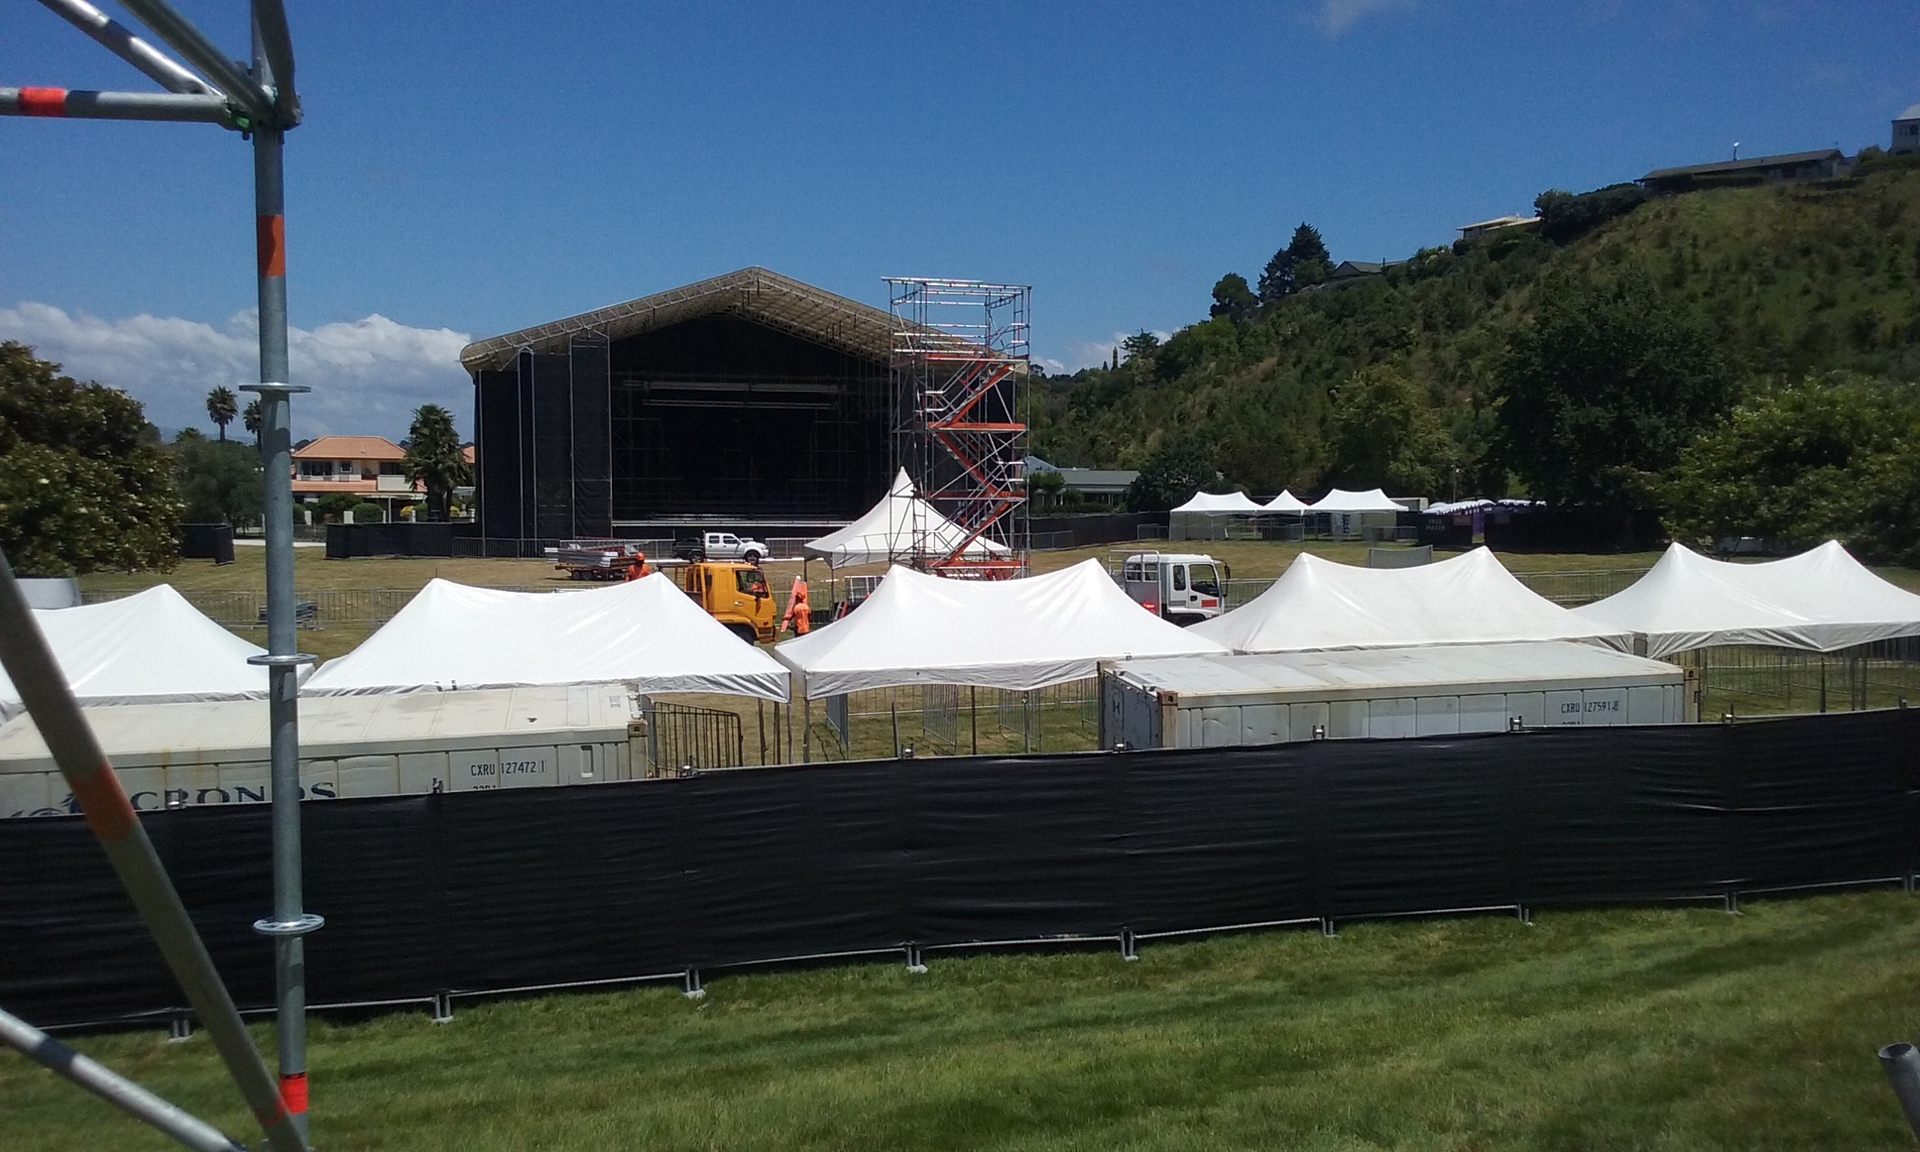 Toto And Napier Crowd Set For Sound And Heat Of Africa Nz Herald